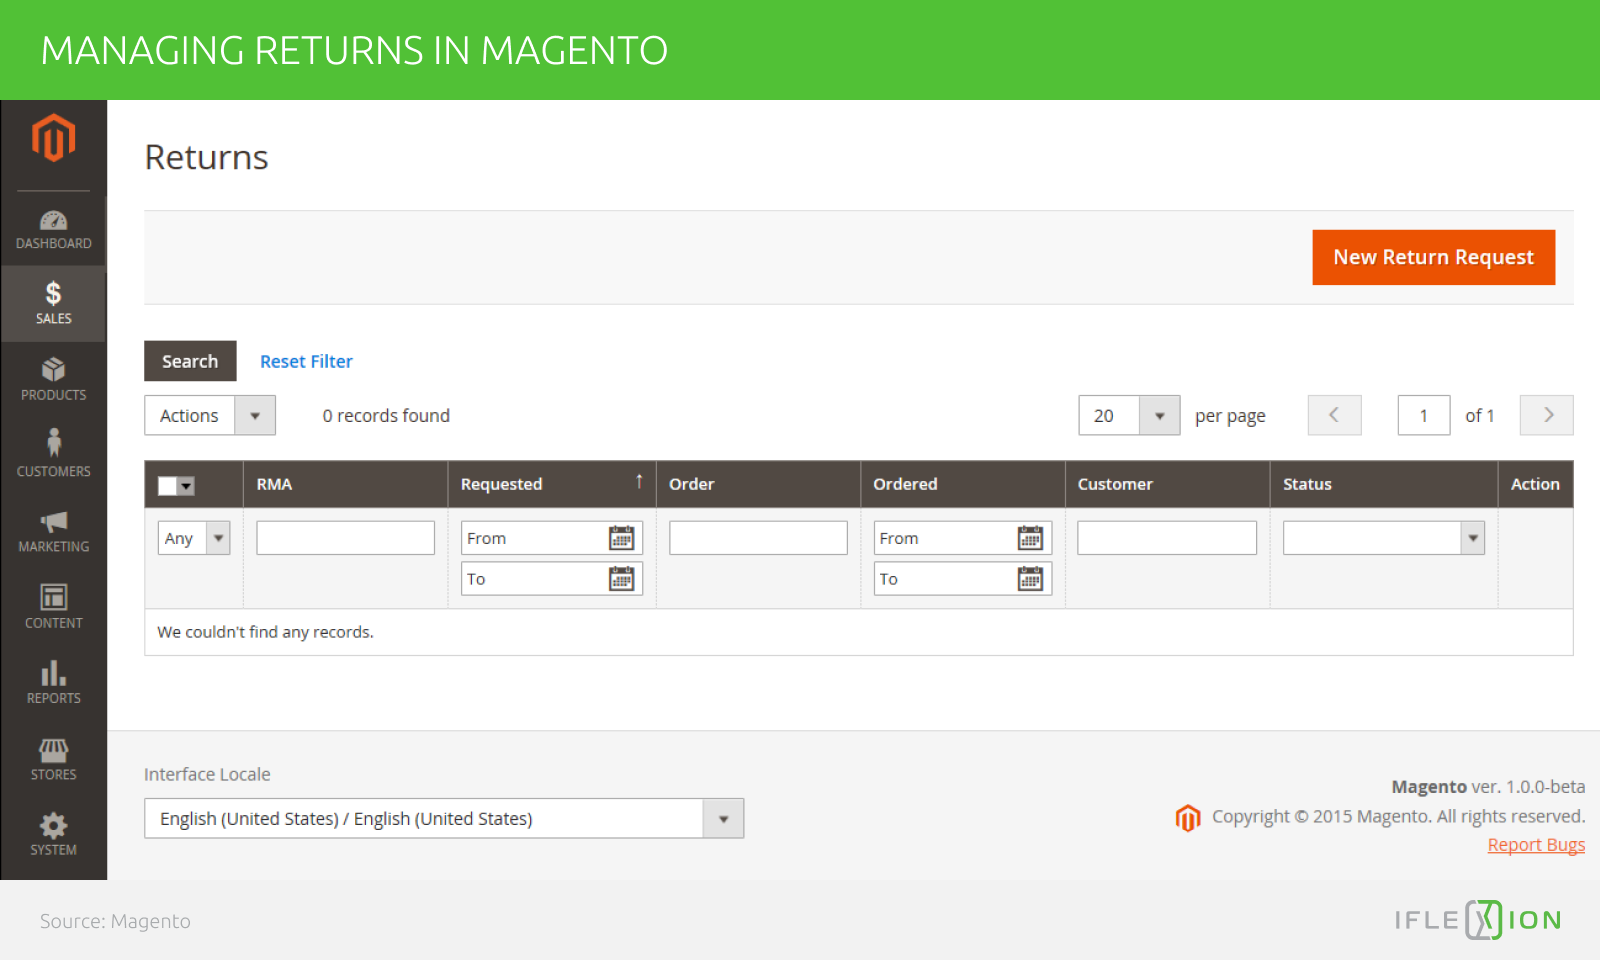 Magento Customization: It's All About Perfect Customer Experience